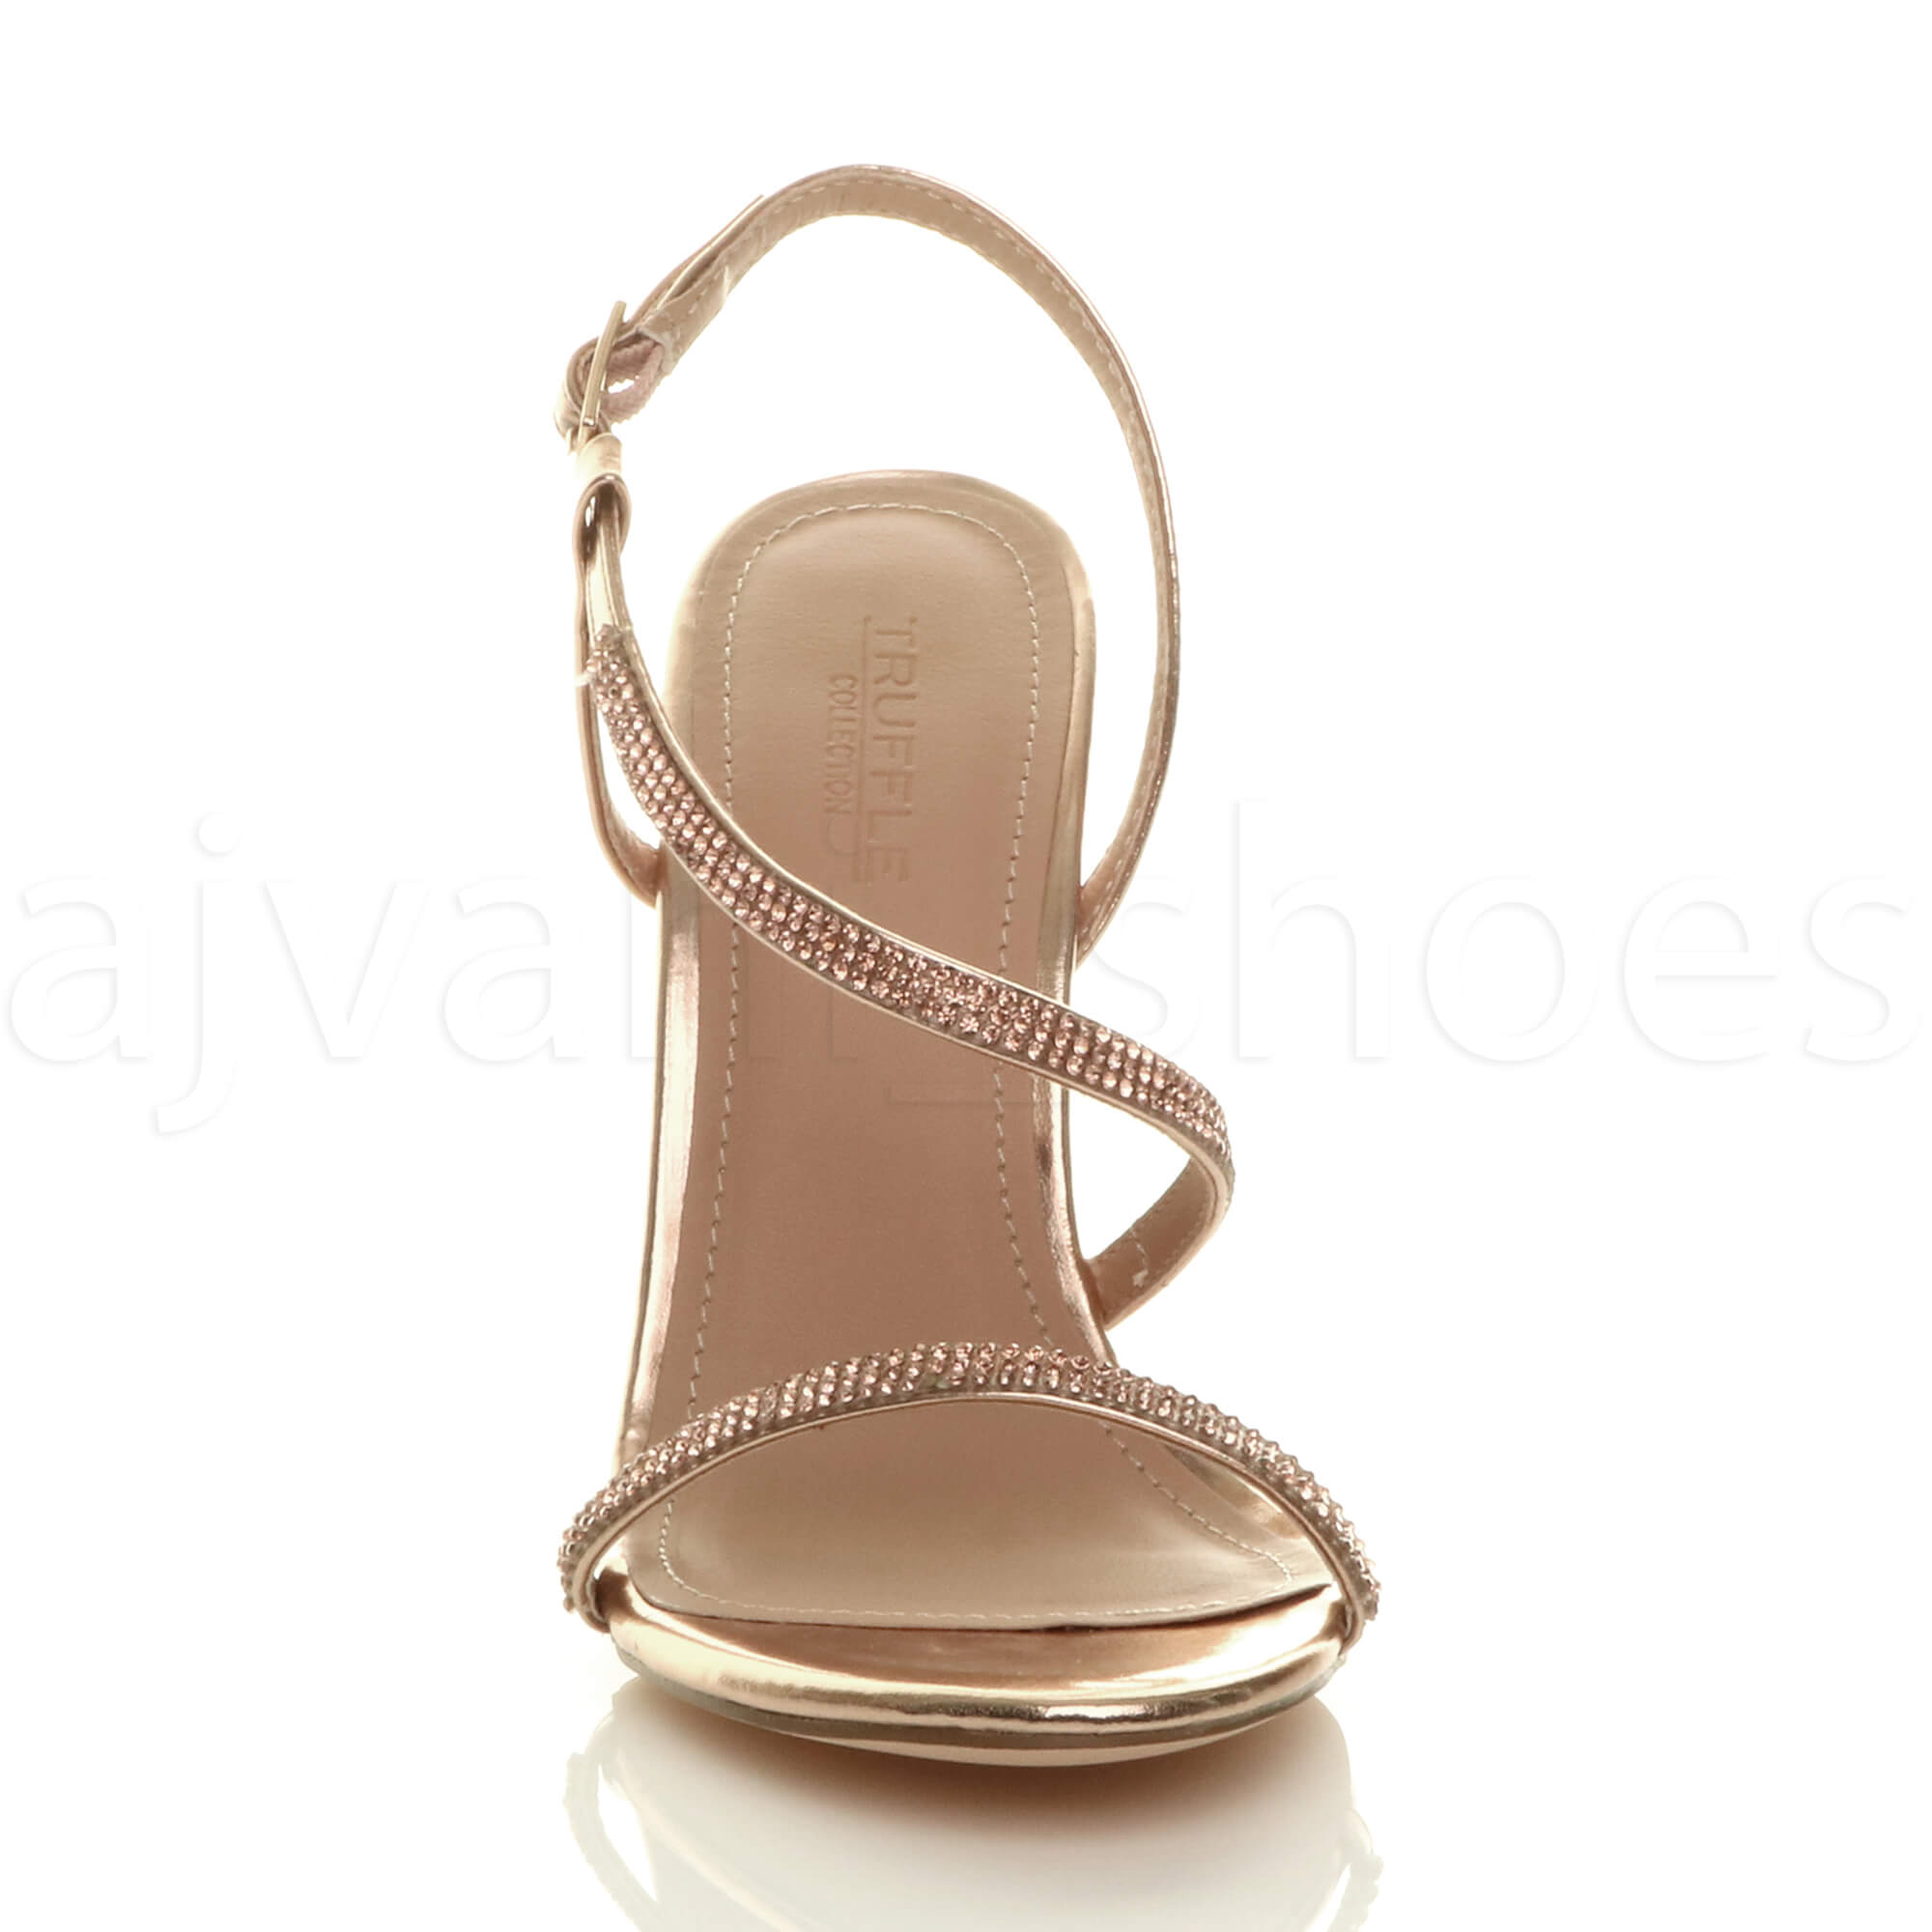 WOMENS-LADIES-HIGH-HEEL-DIAMANTE-BARELY-THERE-STRAPPY-EVENING-SANDALS-SIZE thumbnail 15